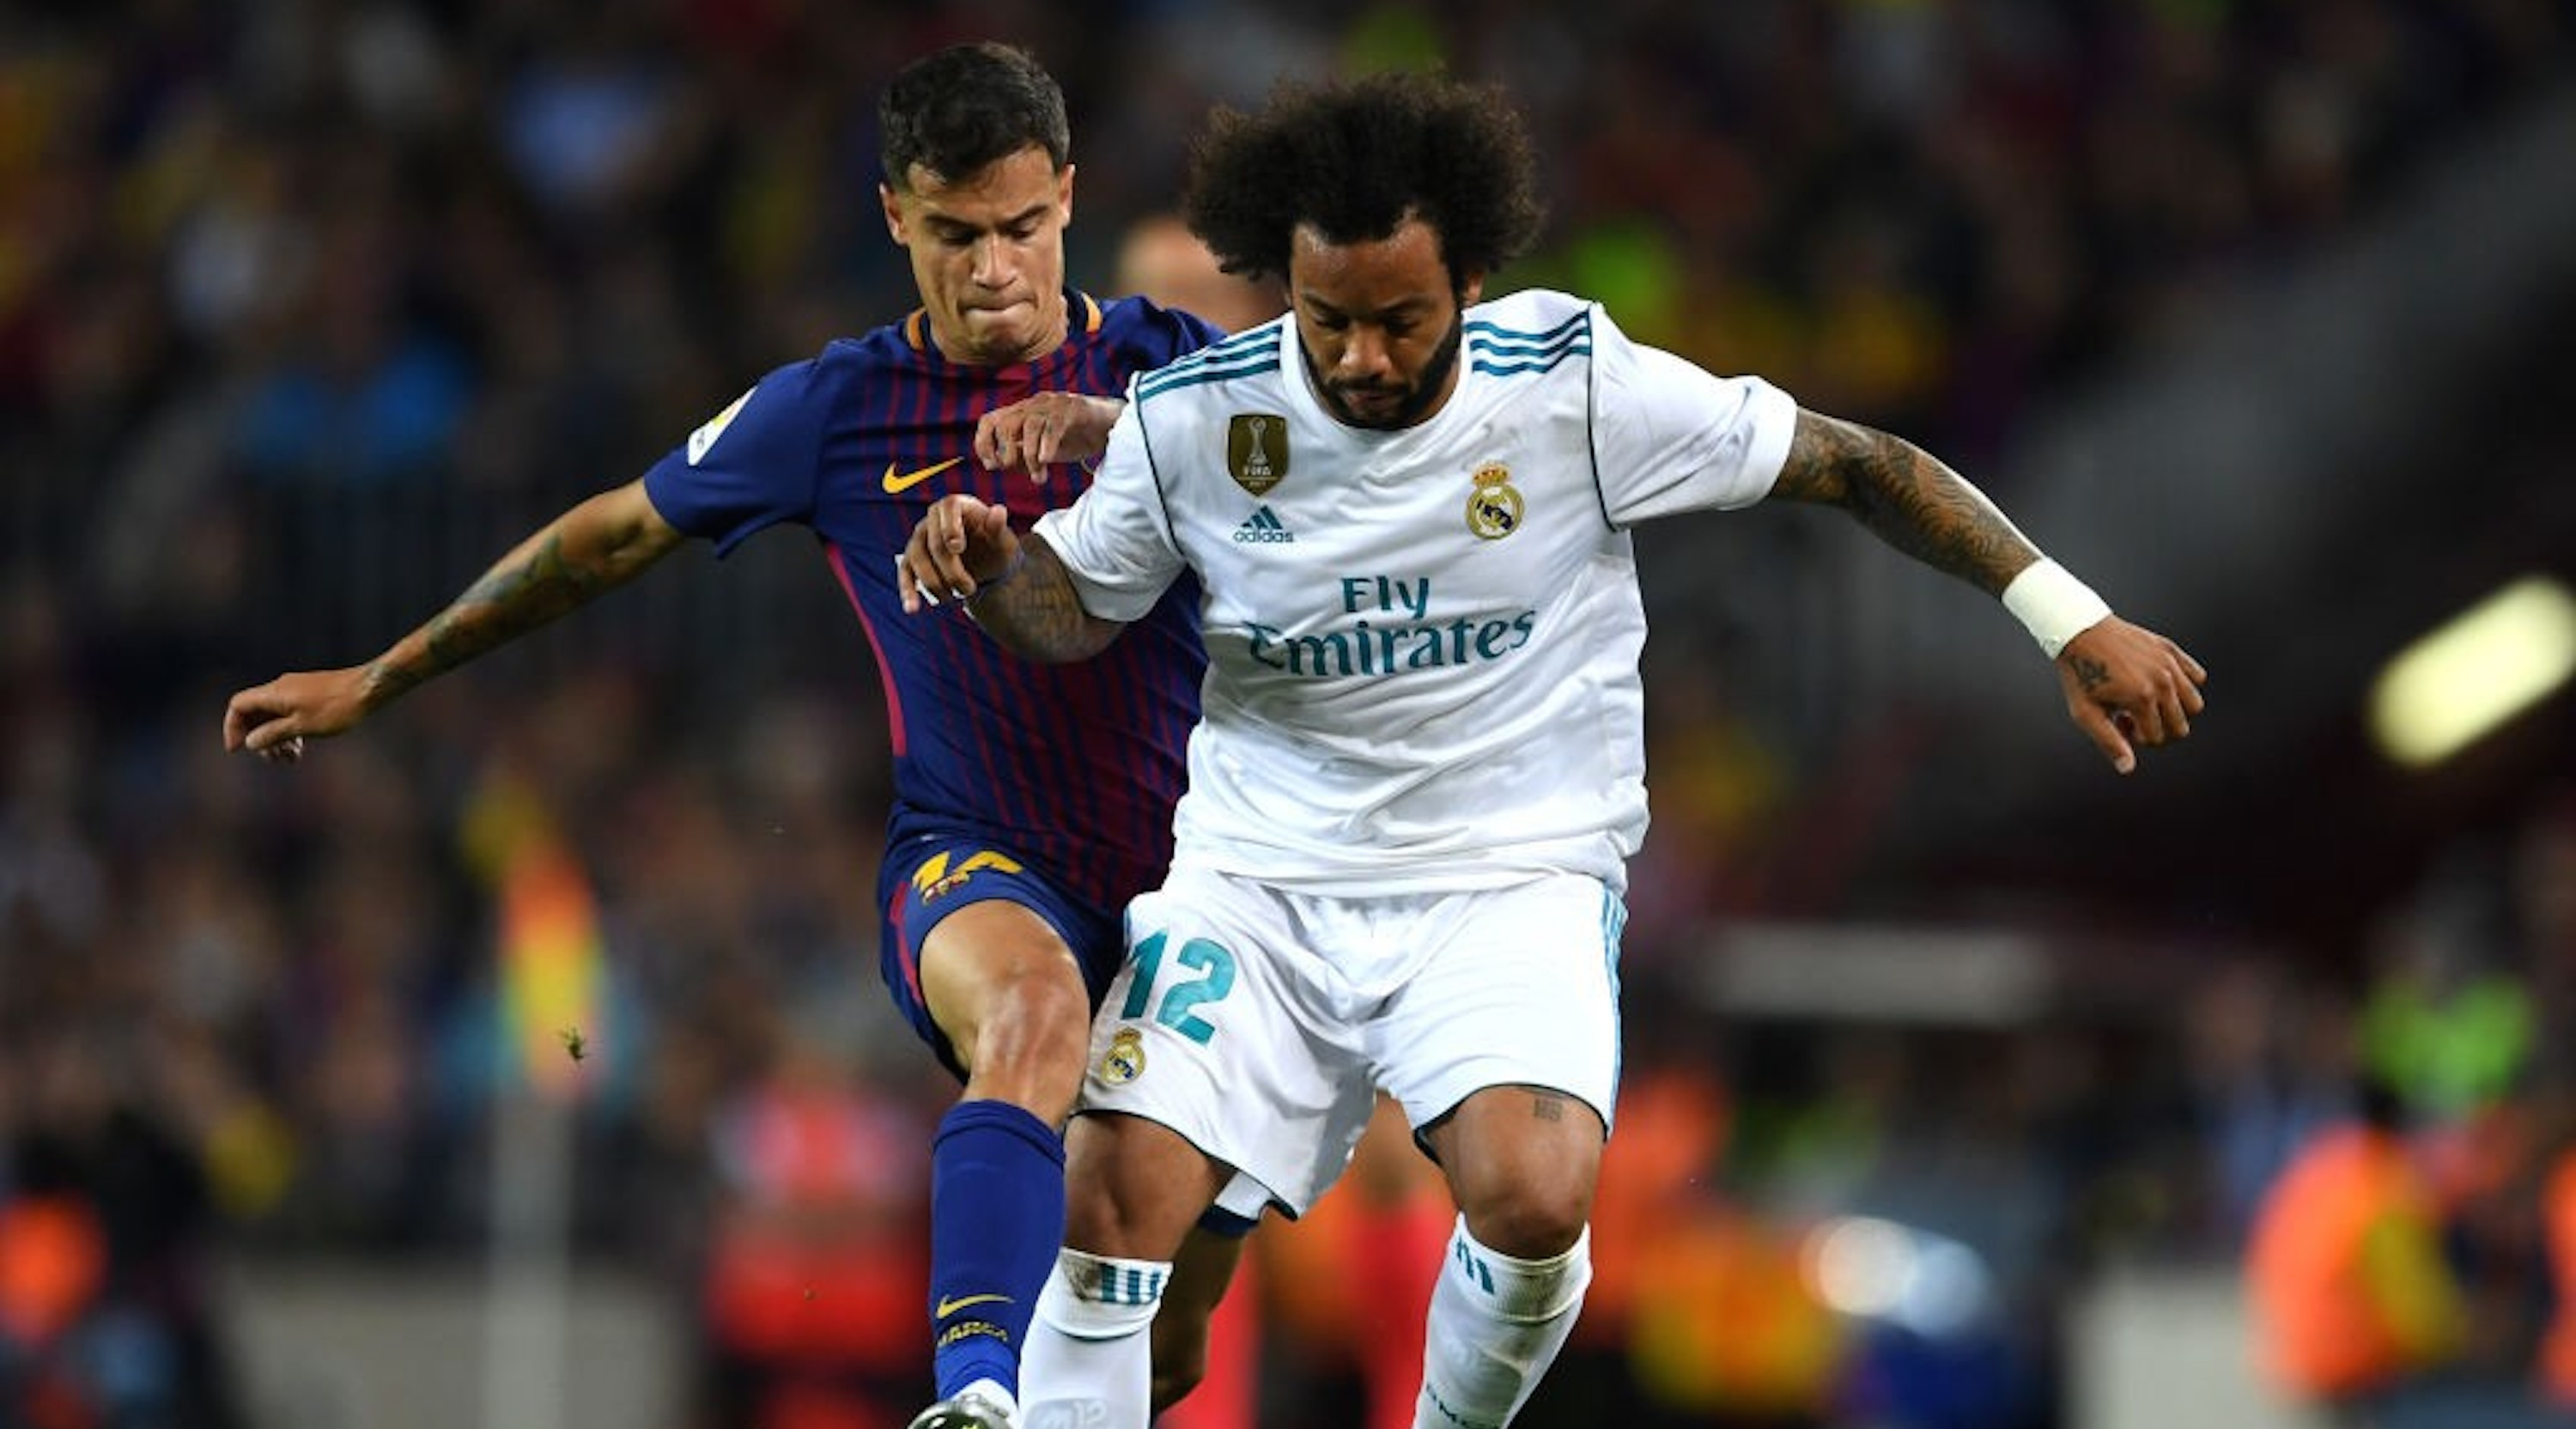 BARCELONA, SPAIN - MAY 06: Marcelo of Real Madrid battles with Philippe Coutinho of Barcelona during the La Liga match between Barcelona and Real Madrid at Camp Nou on May 6, 2018 in Barcelona, Spain. (Photo by David Ramos/Getty Images)